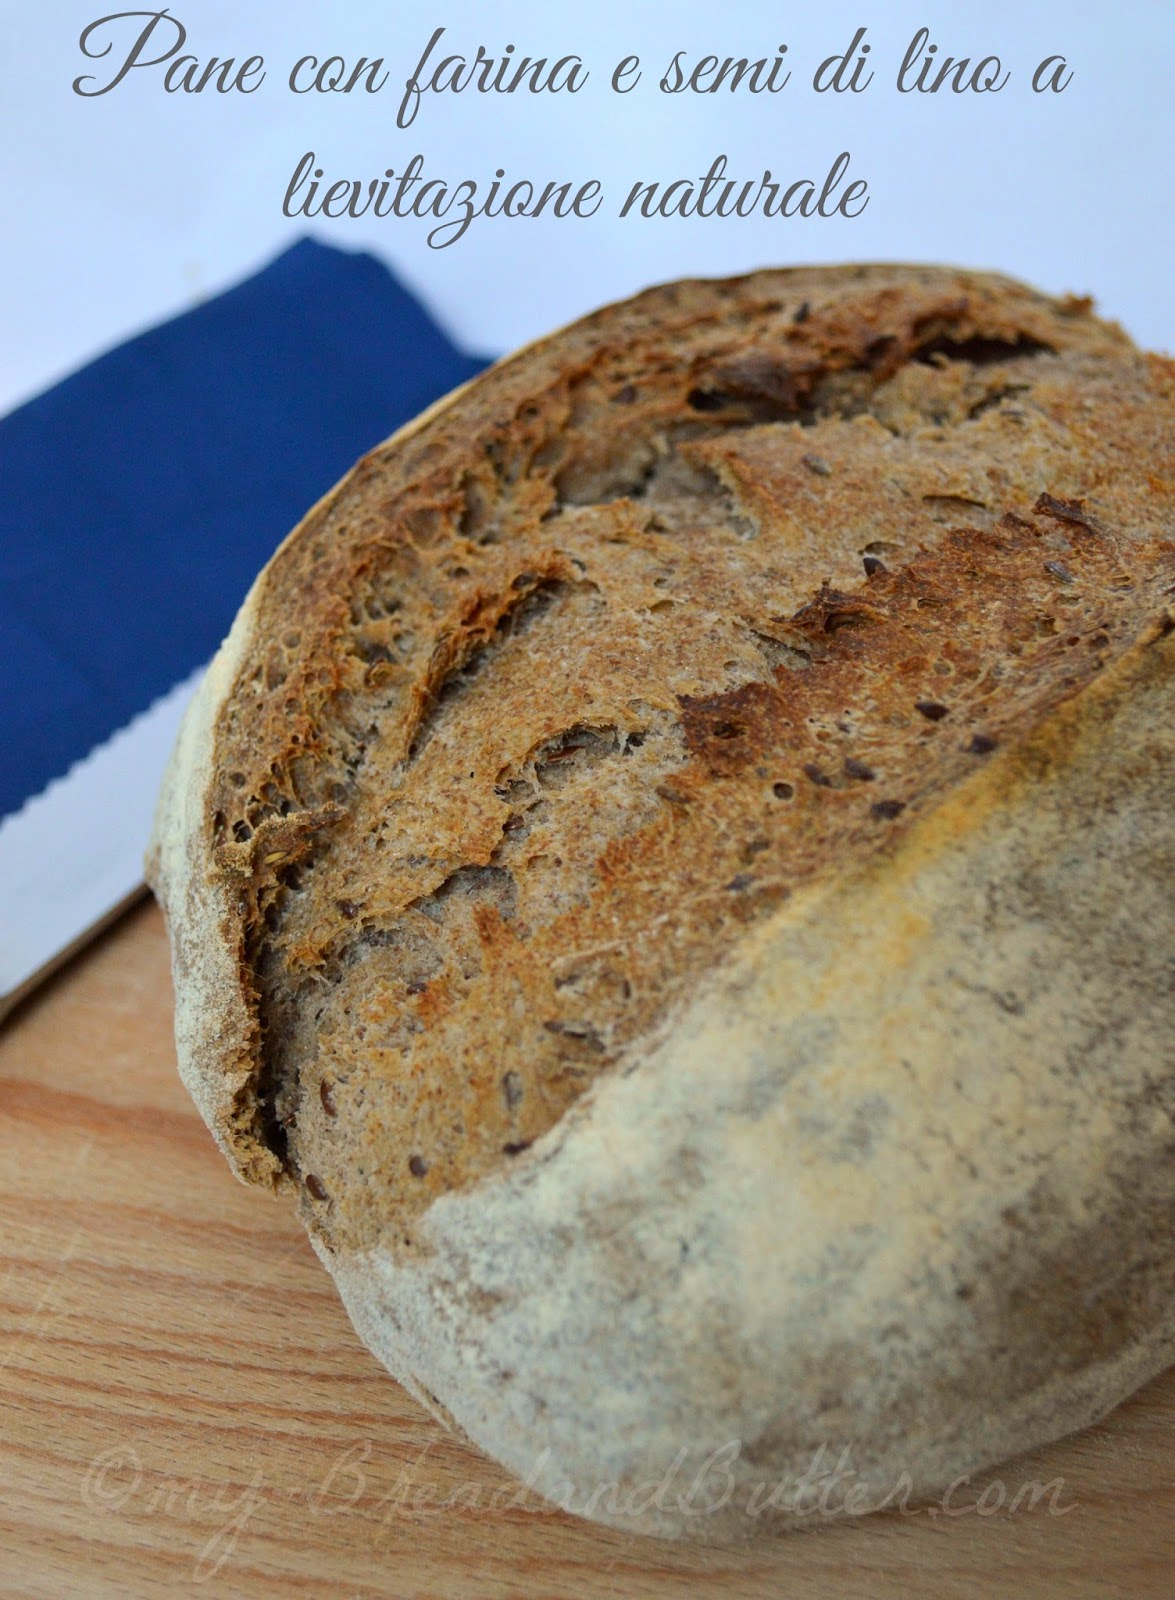 Bread with linseeds and linseeds flour